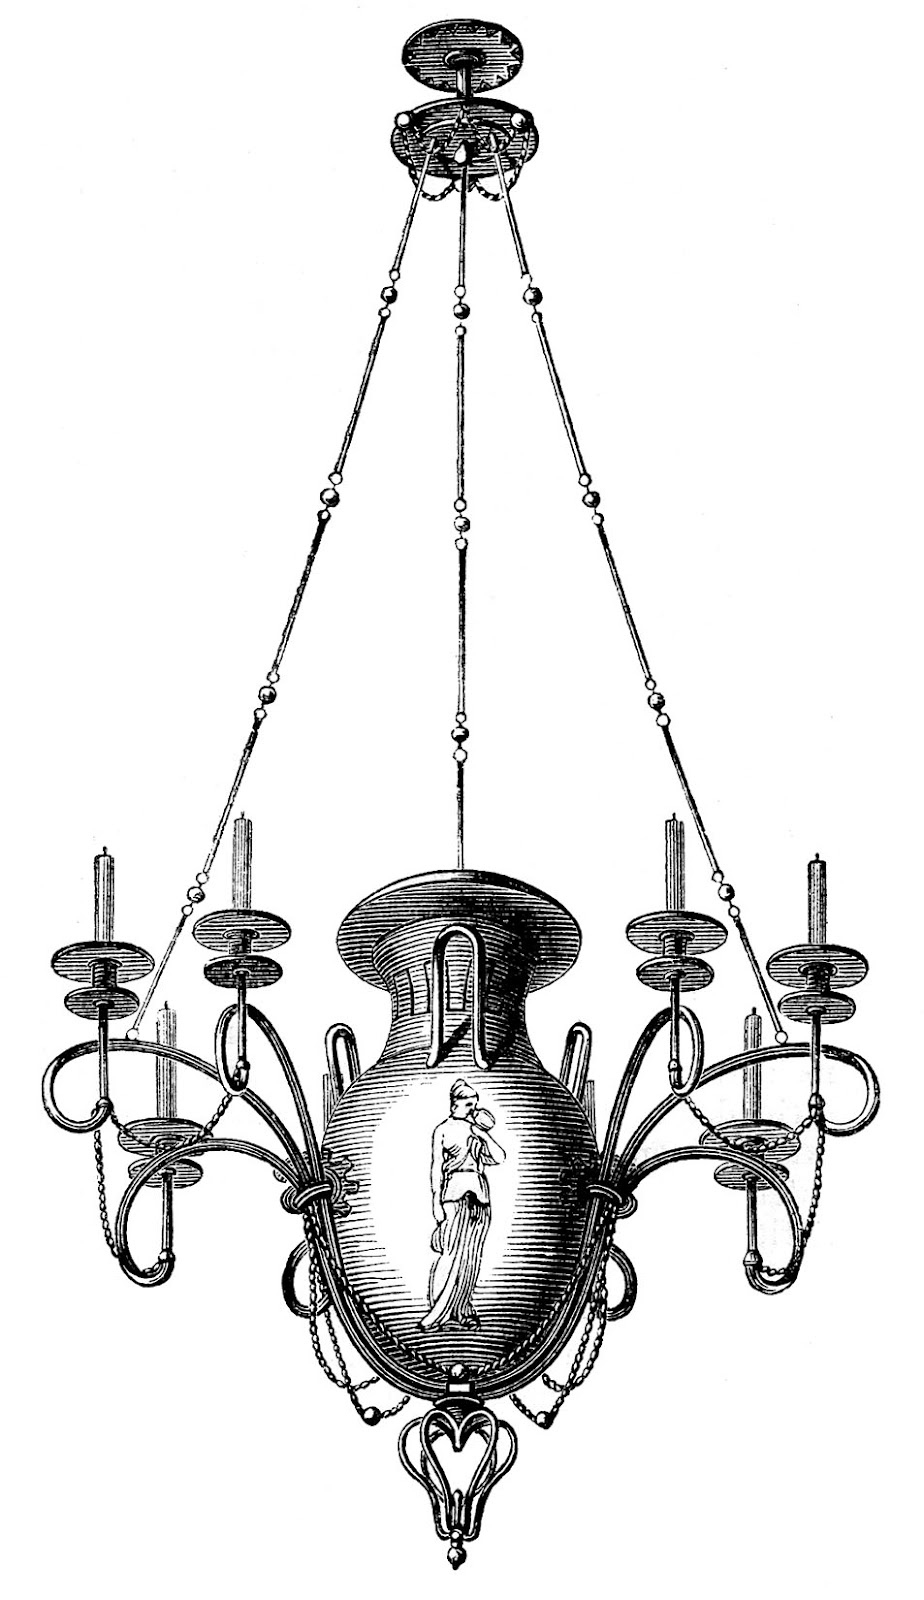 Antique Images 3 Chandeliers 1 Spooky The Graphics Fairy Regarding Antique Black Chandelier (Image 3 of 15)